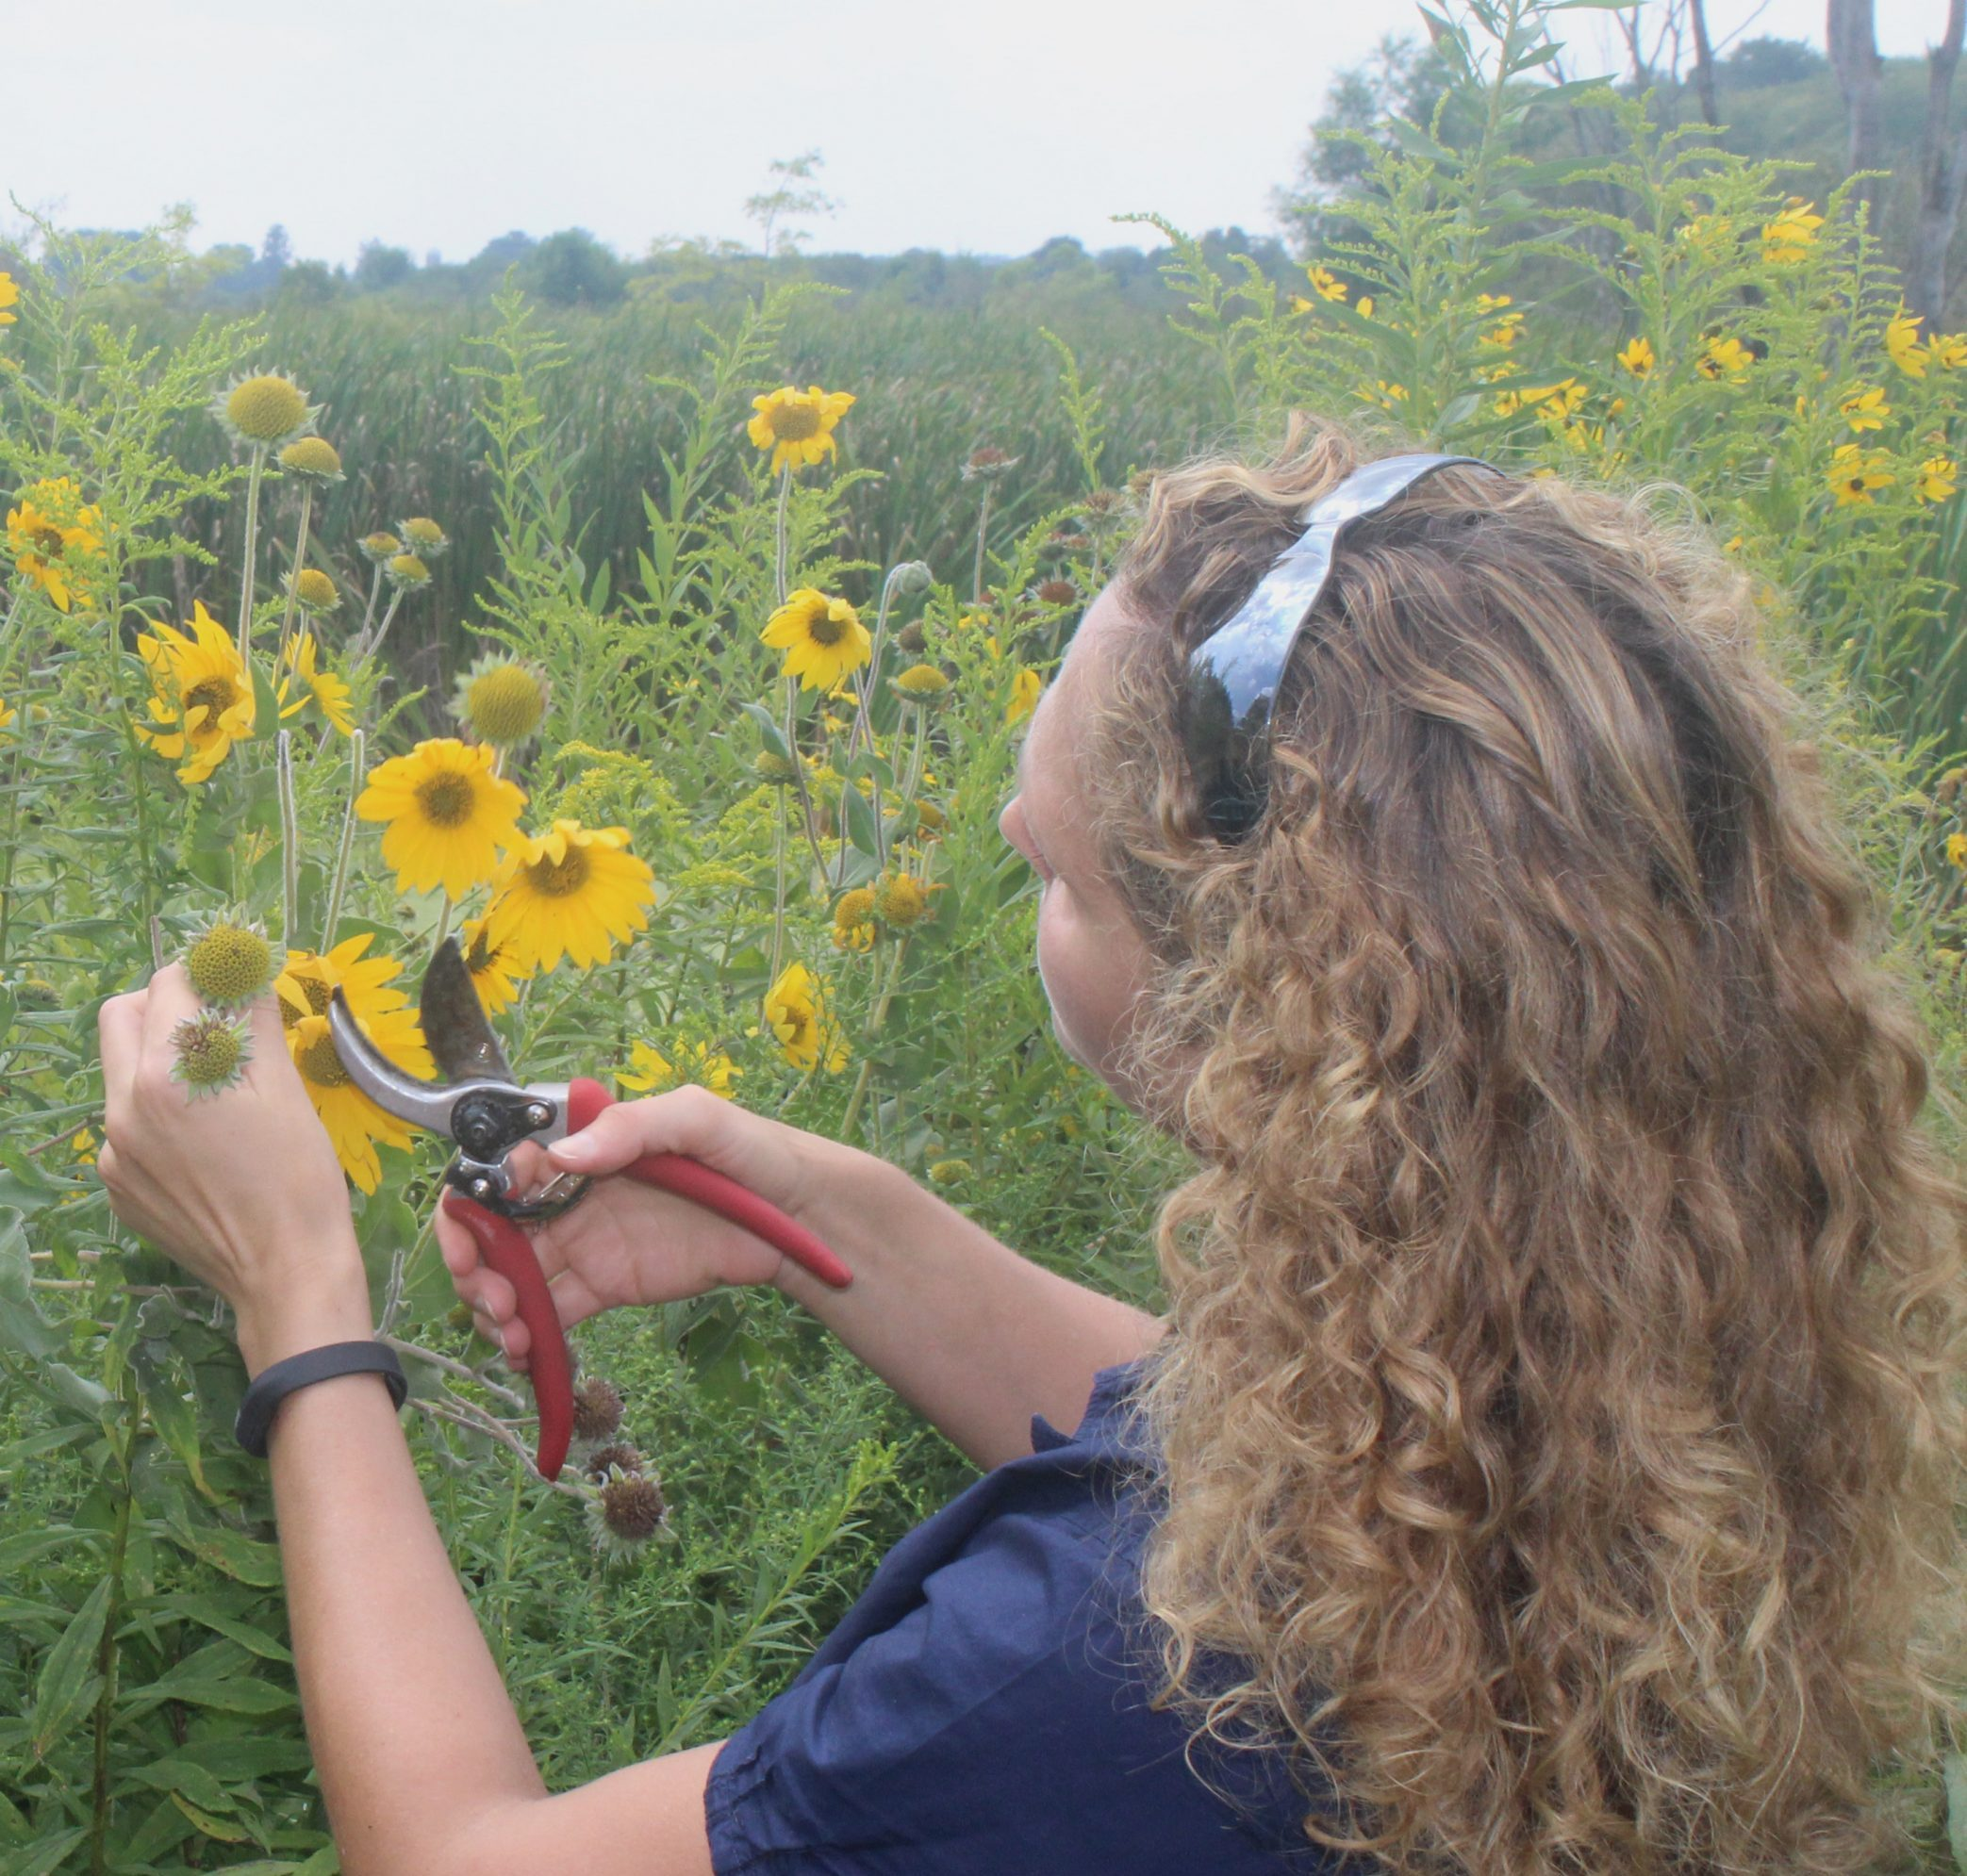 Shana Byrd collecting seed from an asteraceae, blonde curls are shown as she faces the seed heads of the sunflowers she is removing with clippers.